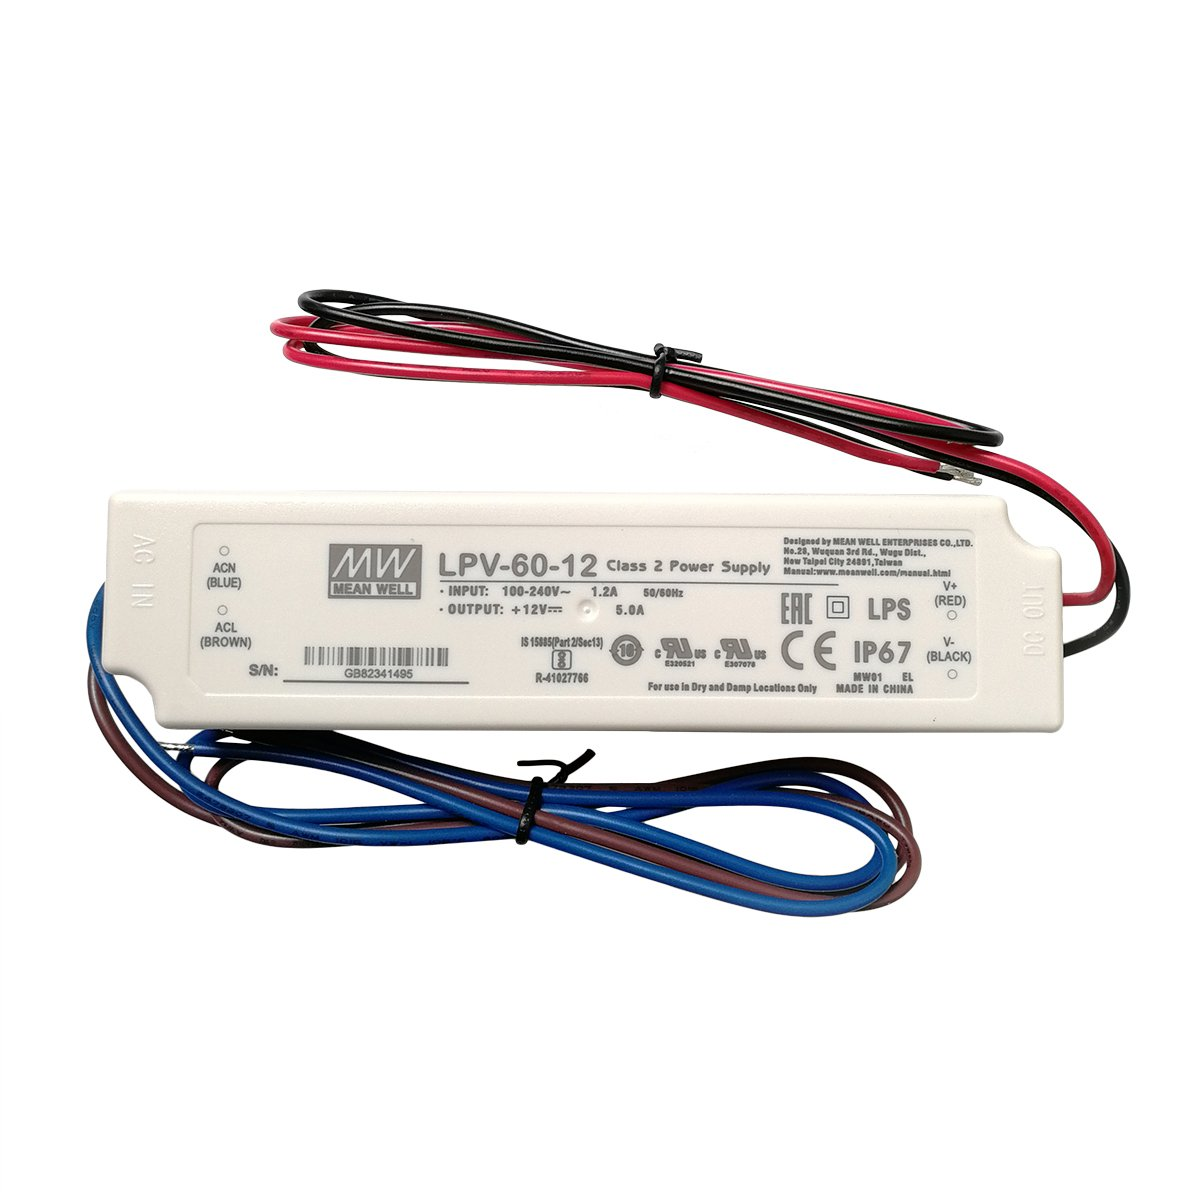 MW LPV-60-12 LED Driver Outdoor Waterproof AC-DC 12V 5A Power Supply for LED Sealed Panel Mount LPV Series (12V)